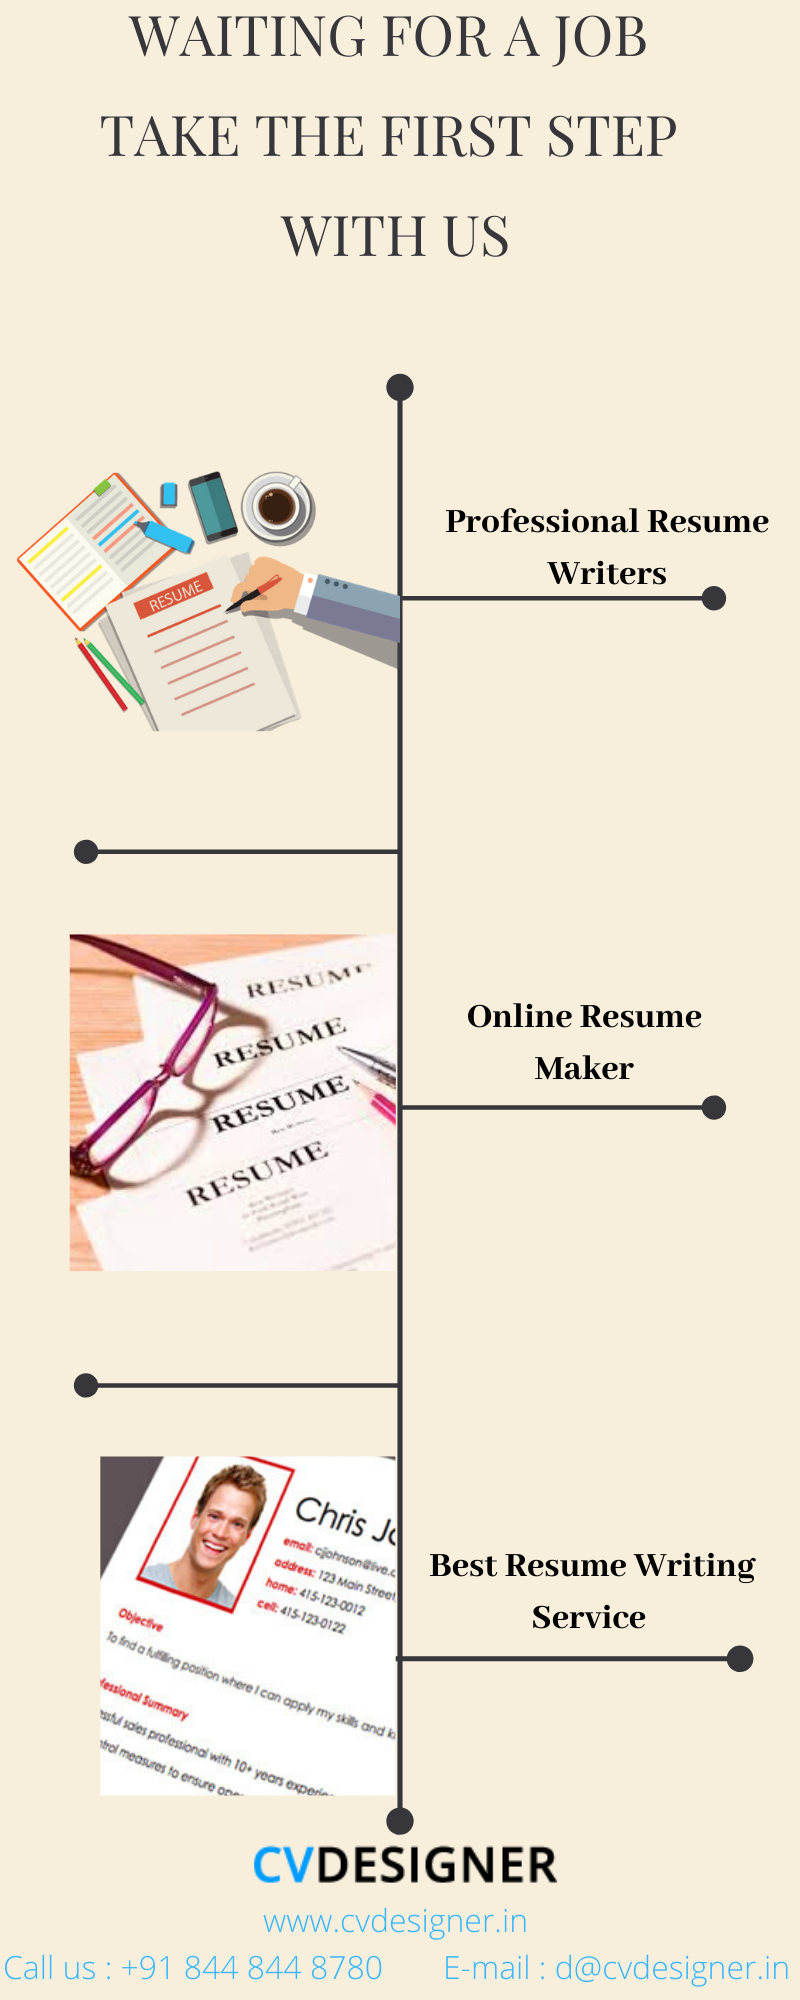 Looking for professional online resume writers in India